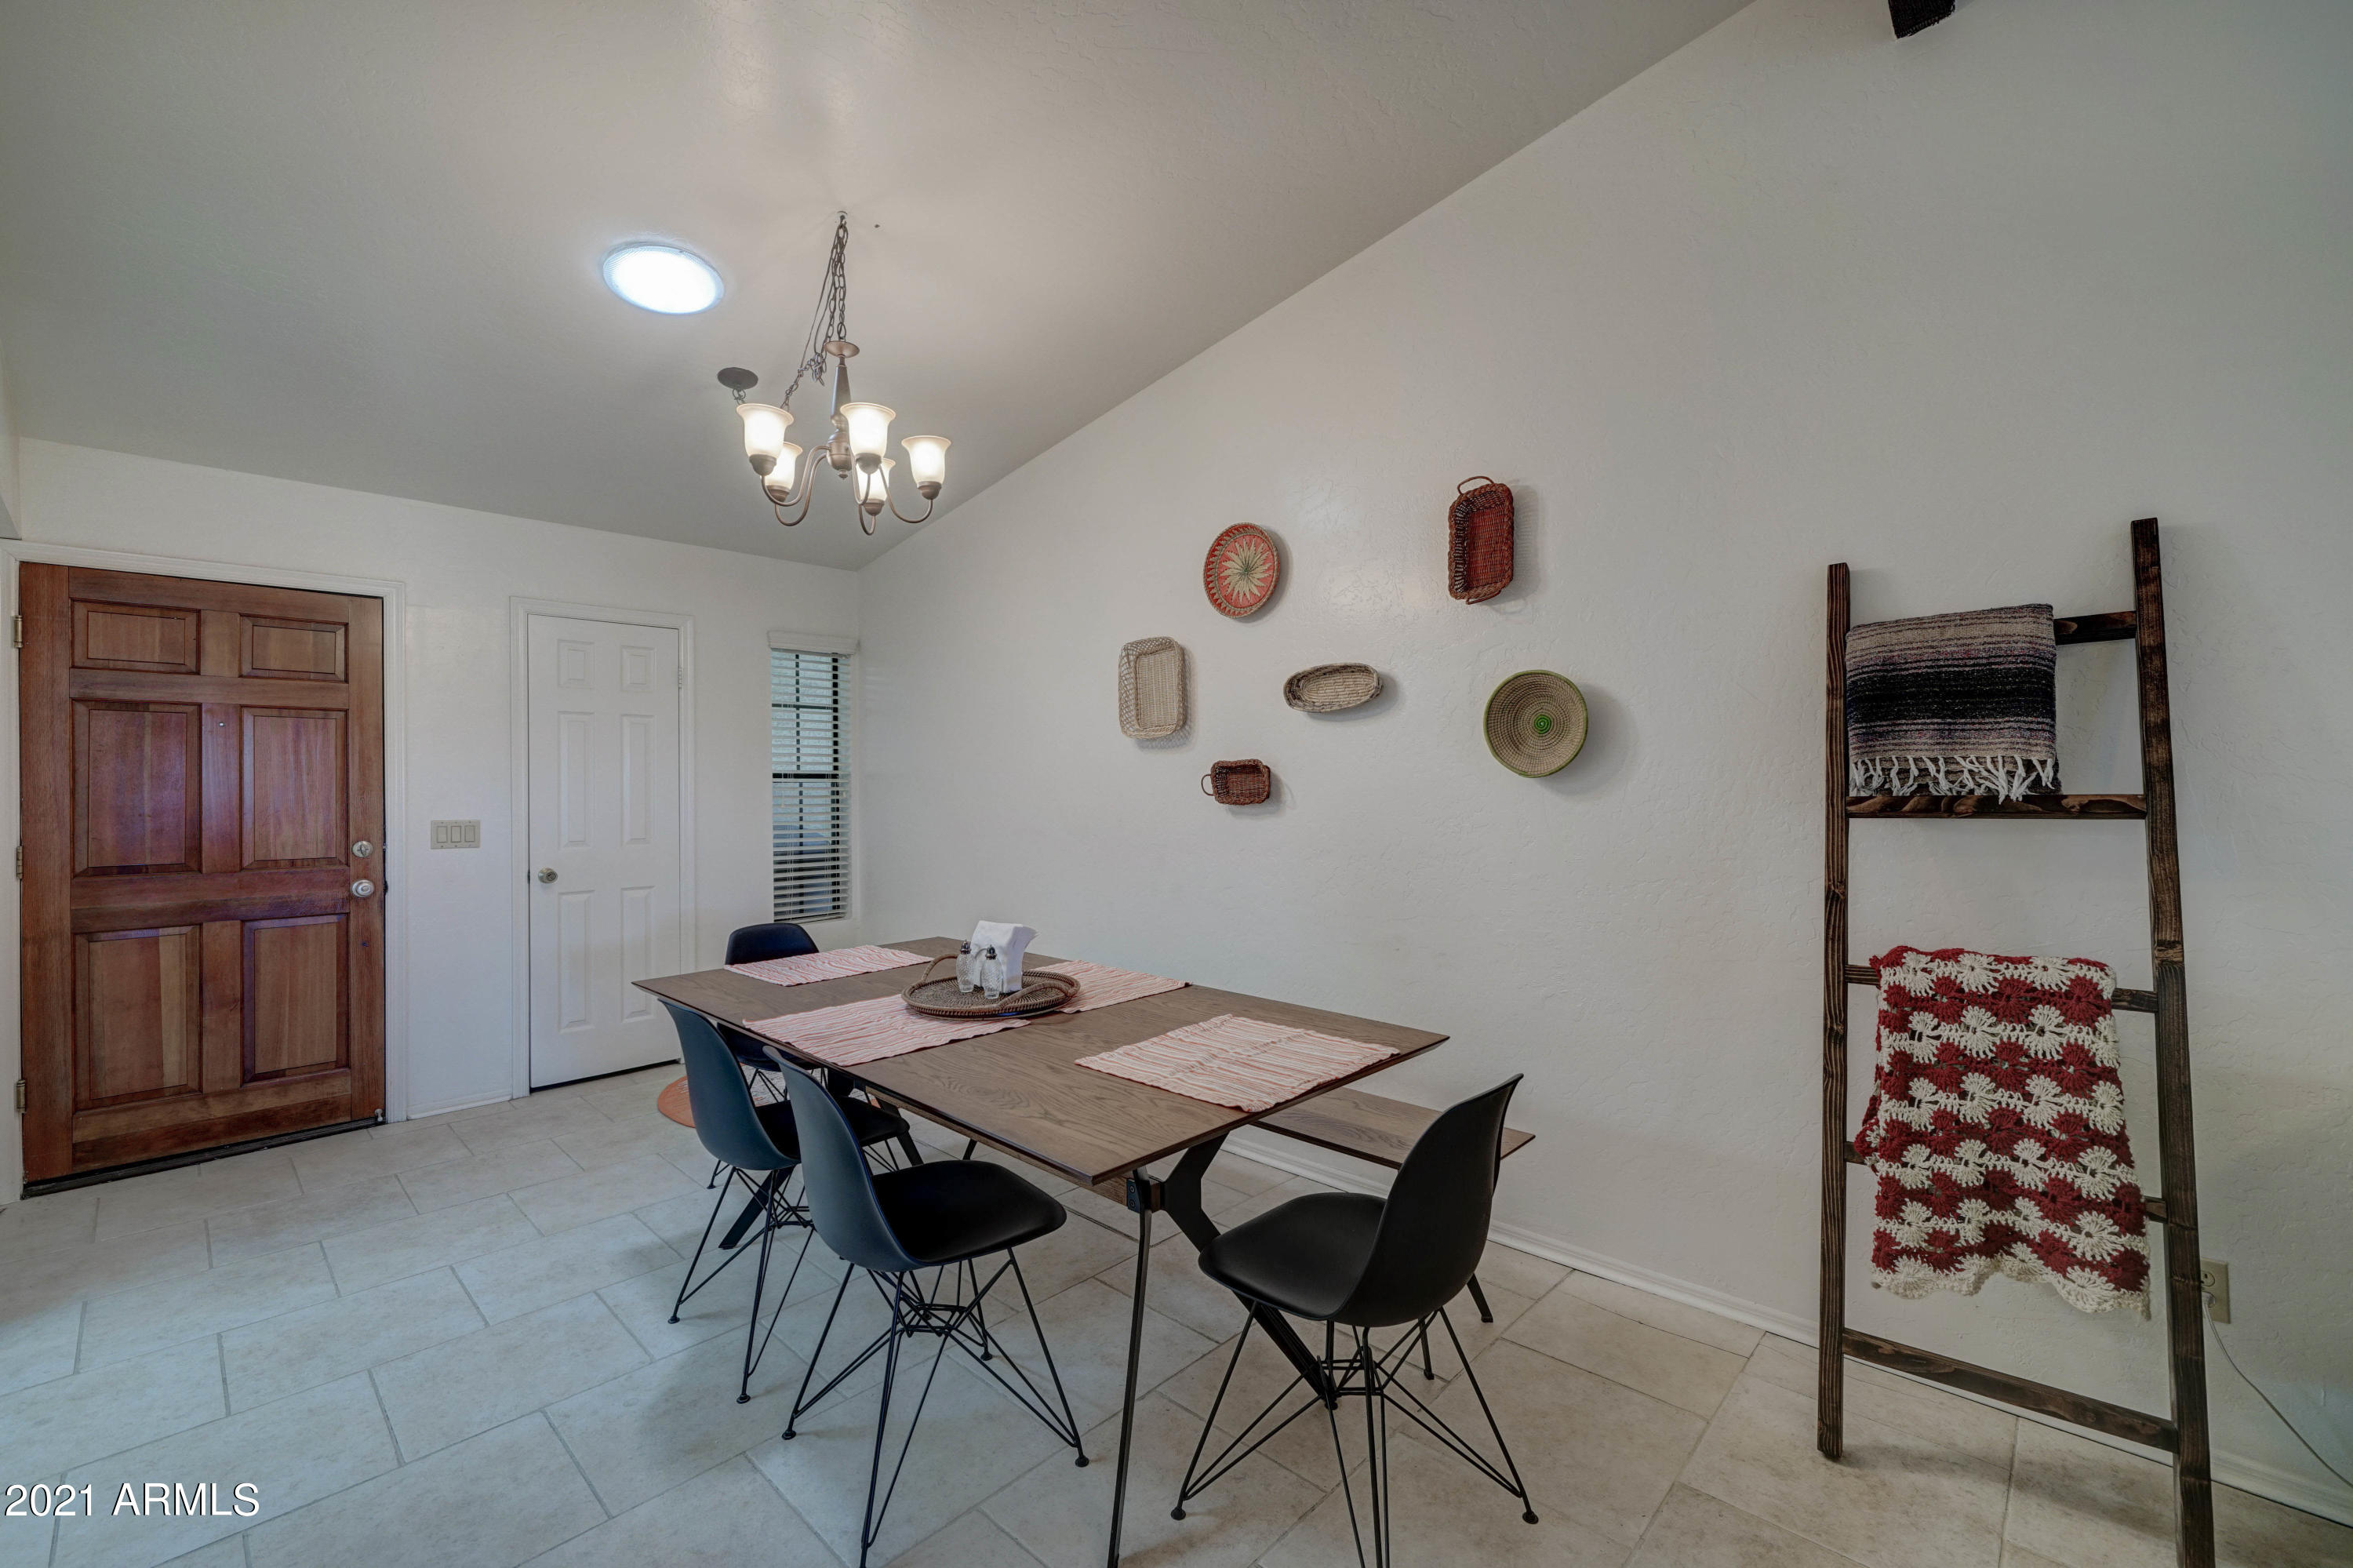 1500 N SUNVIEW Parkway # 28, Gilbert, AZ 85234, 2 Bedrooms Bedrooms, ,Residential Lease,For Rent,1500 N SUNVIEW Parkway # 28,6207240